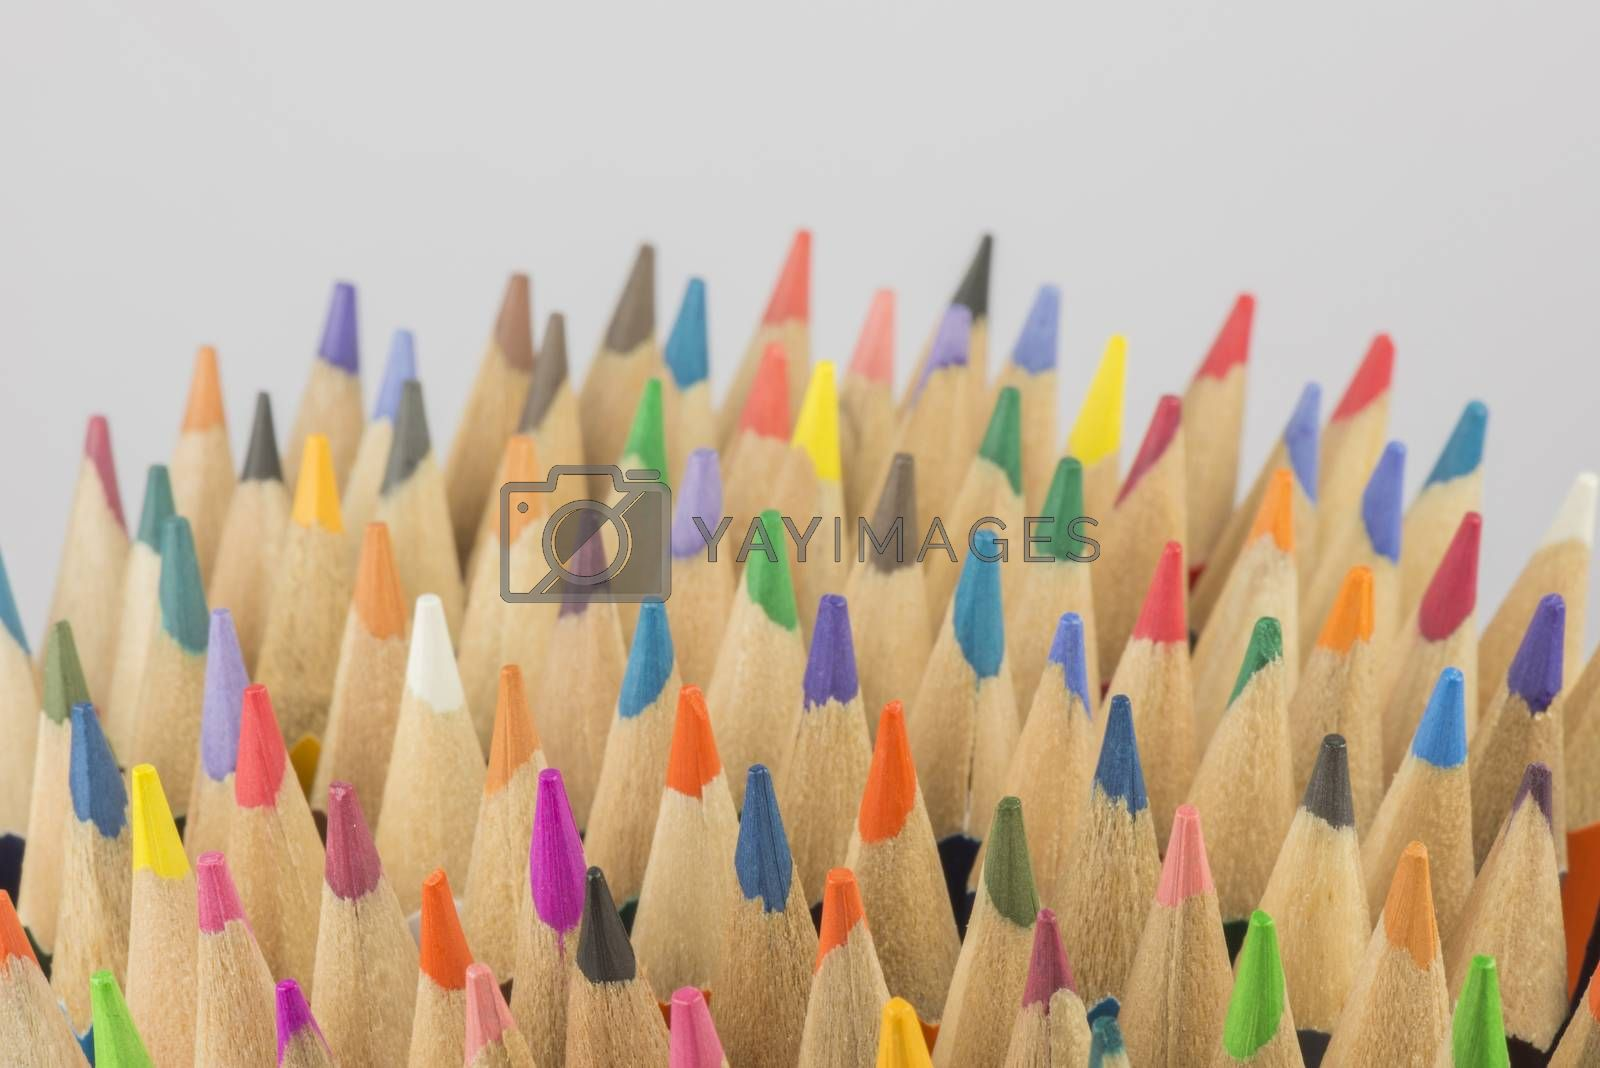 collection of colored wooden pencils  by Tofotografie